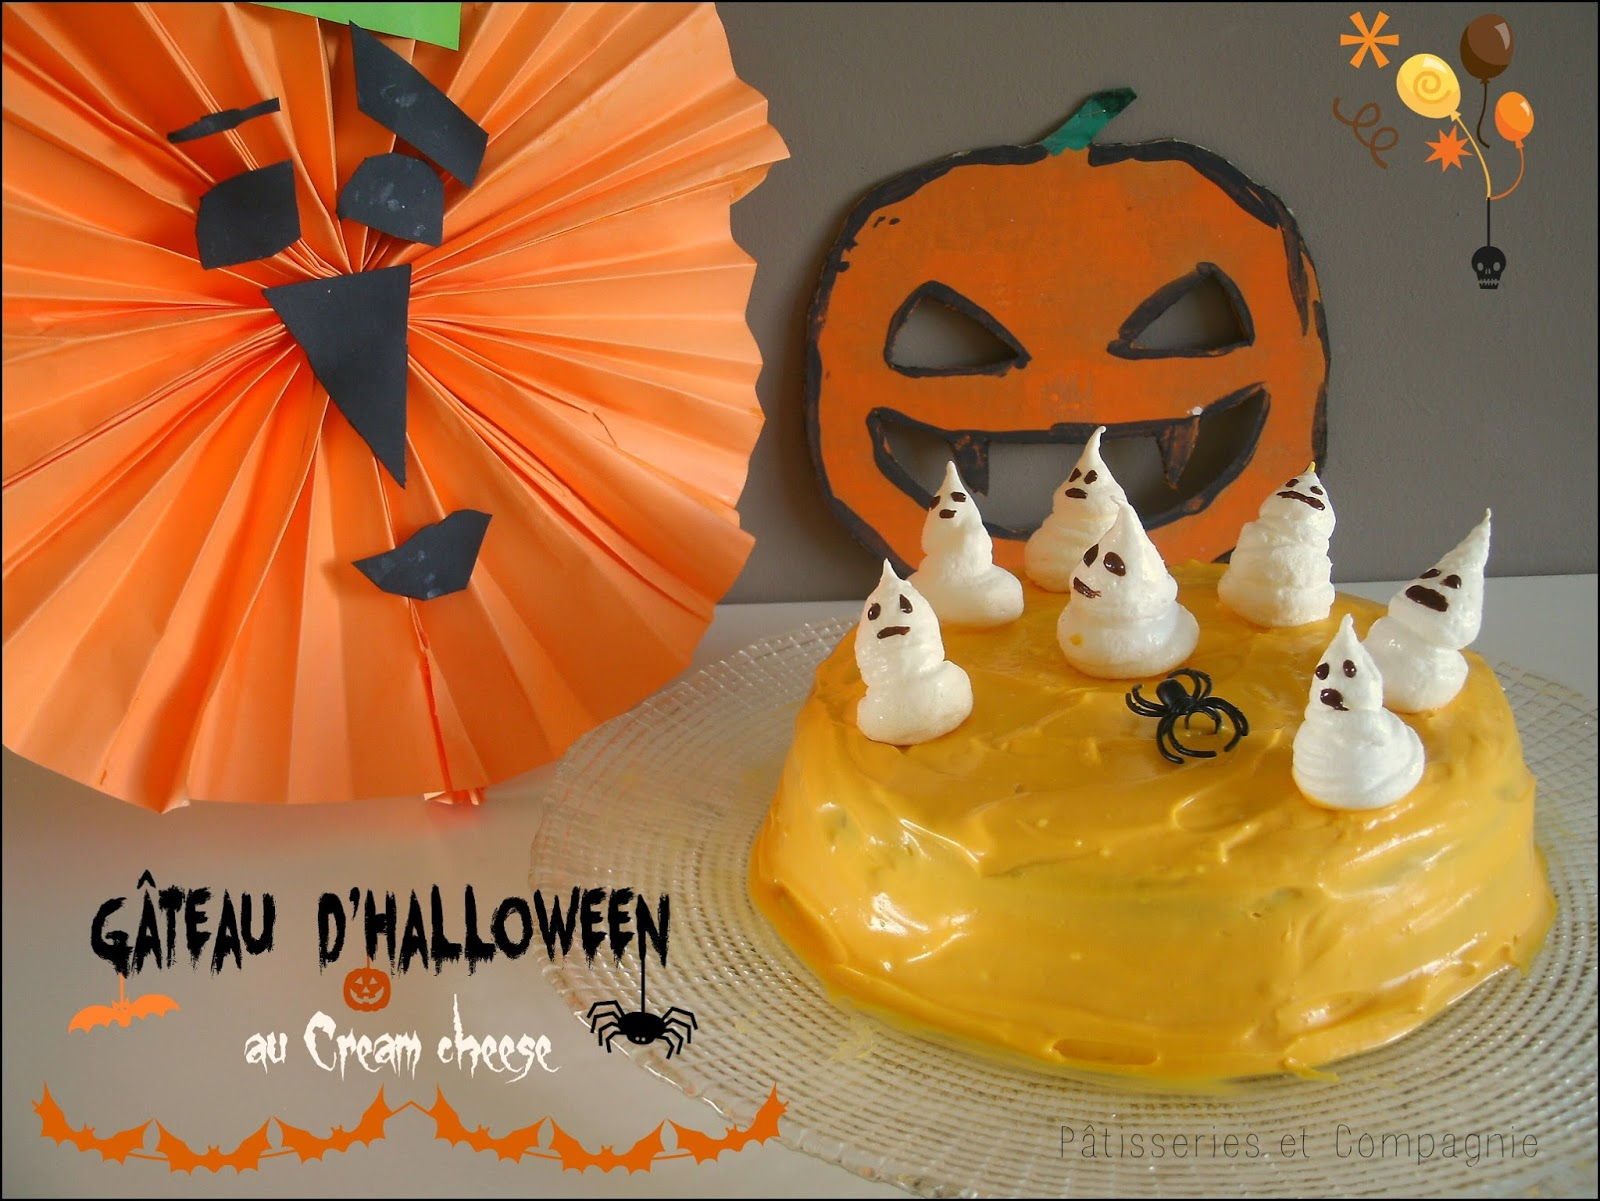 P tisseries et compagnie g teau d 39 halloween au cream cheese - Temps de cuisson gateau au yaourt ...